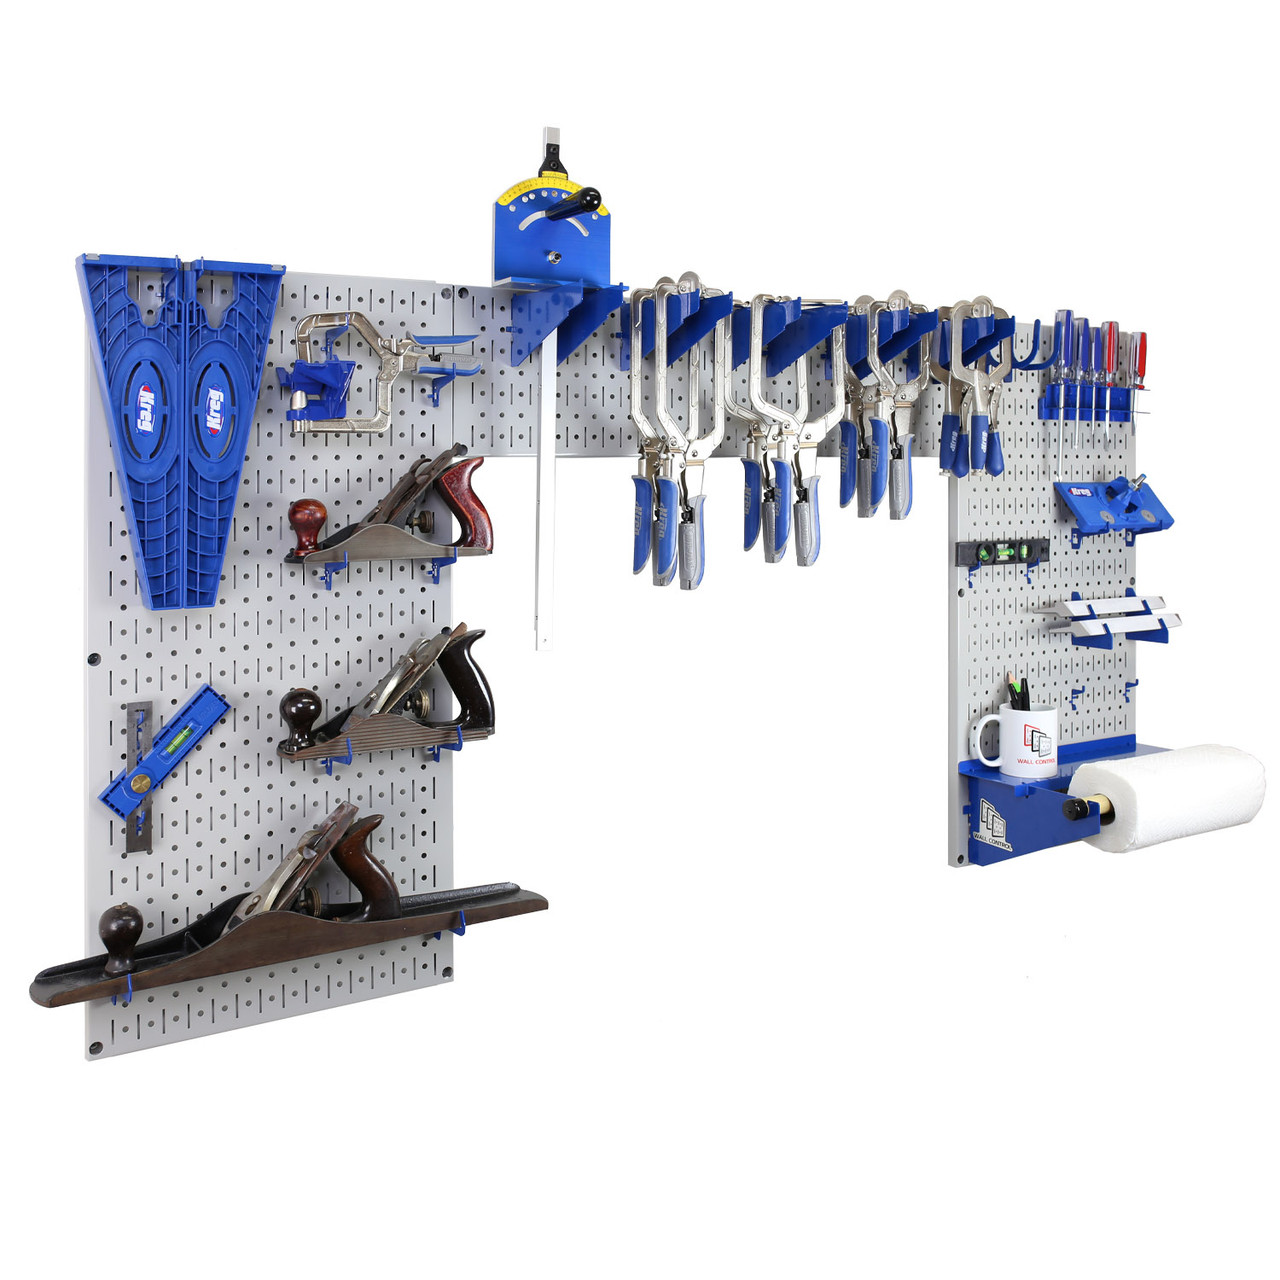 Lazy Guy Diy Maker Woodworking Tool Storage Organizer Set Grey Metal Pegboard With Accessories